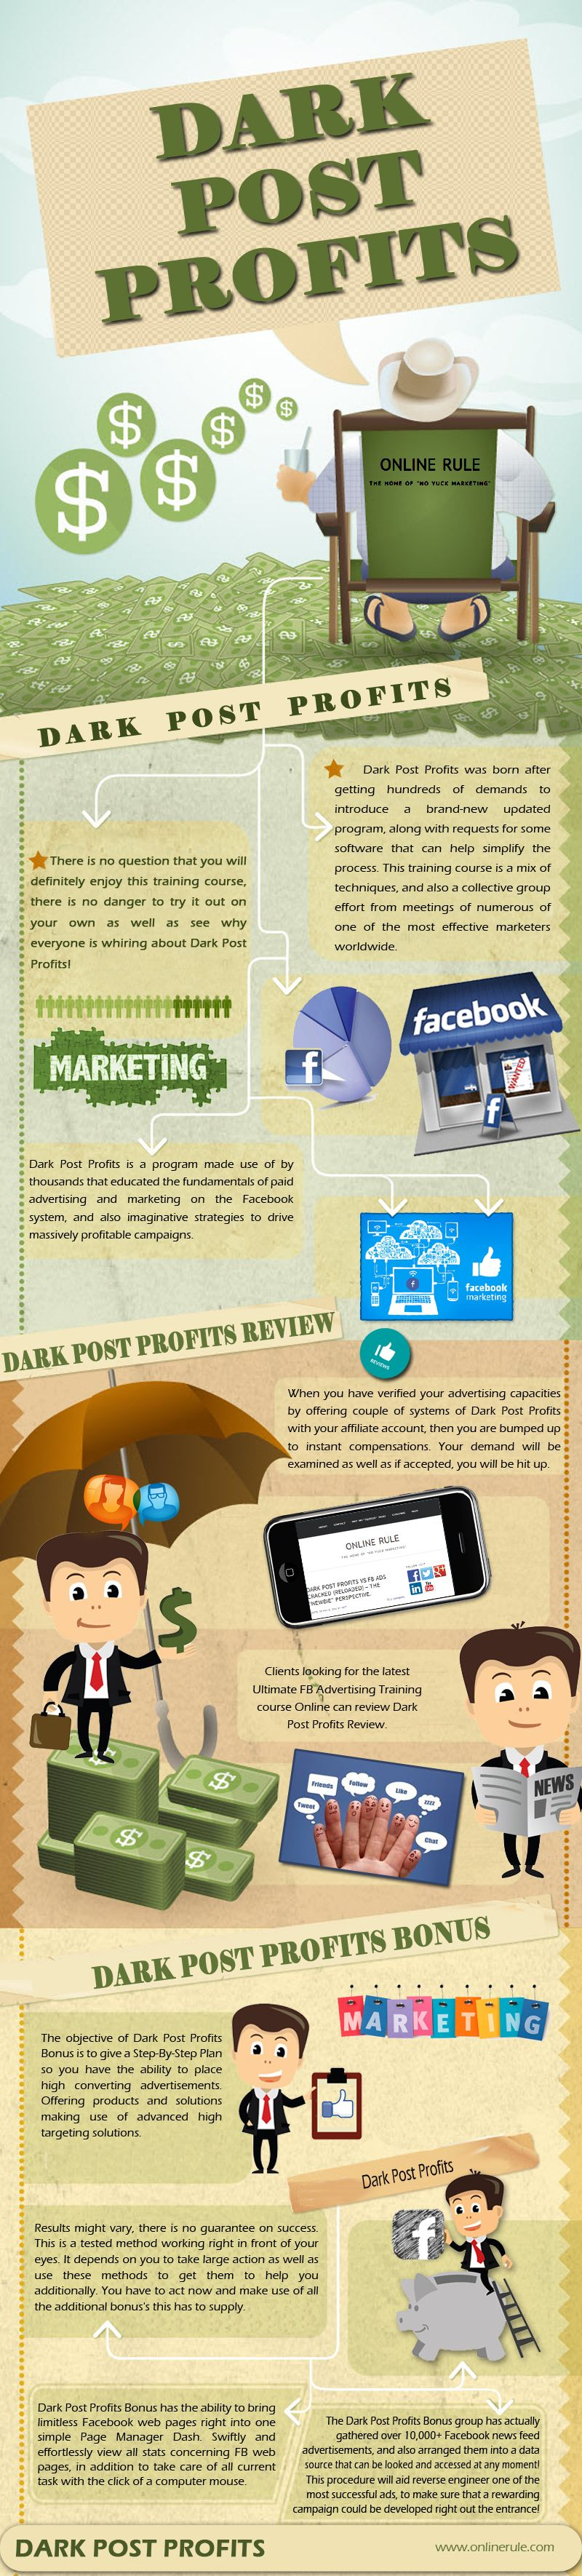 Dark Post Profits are unpublished Facebook ads that are not noticeable on your Facebook news feed. Click this site http://www.onlinerule.com/dark-post-profits-vs-fb-ads-cracked-reloaded-the-newbie-perspective/ for more information on Dark Post Profits Bonus. Thus indicating you do not have some heavyweight or massive follower web page with thousands of likes to obtain some tread. Not just because of the profits.